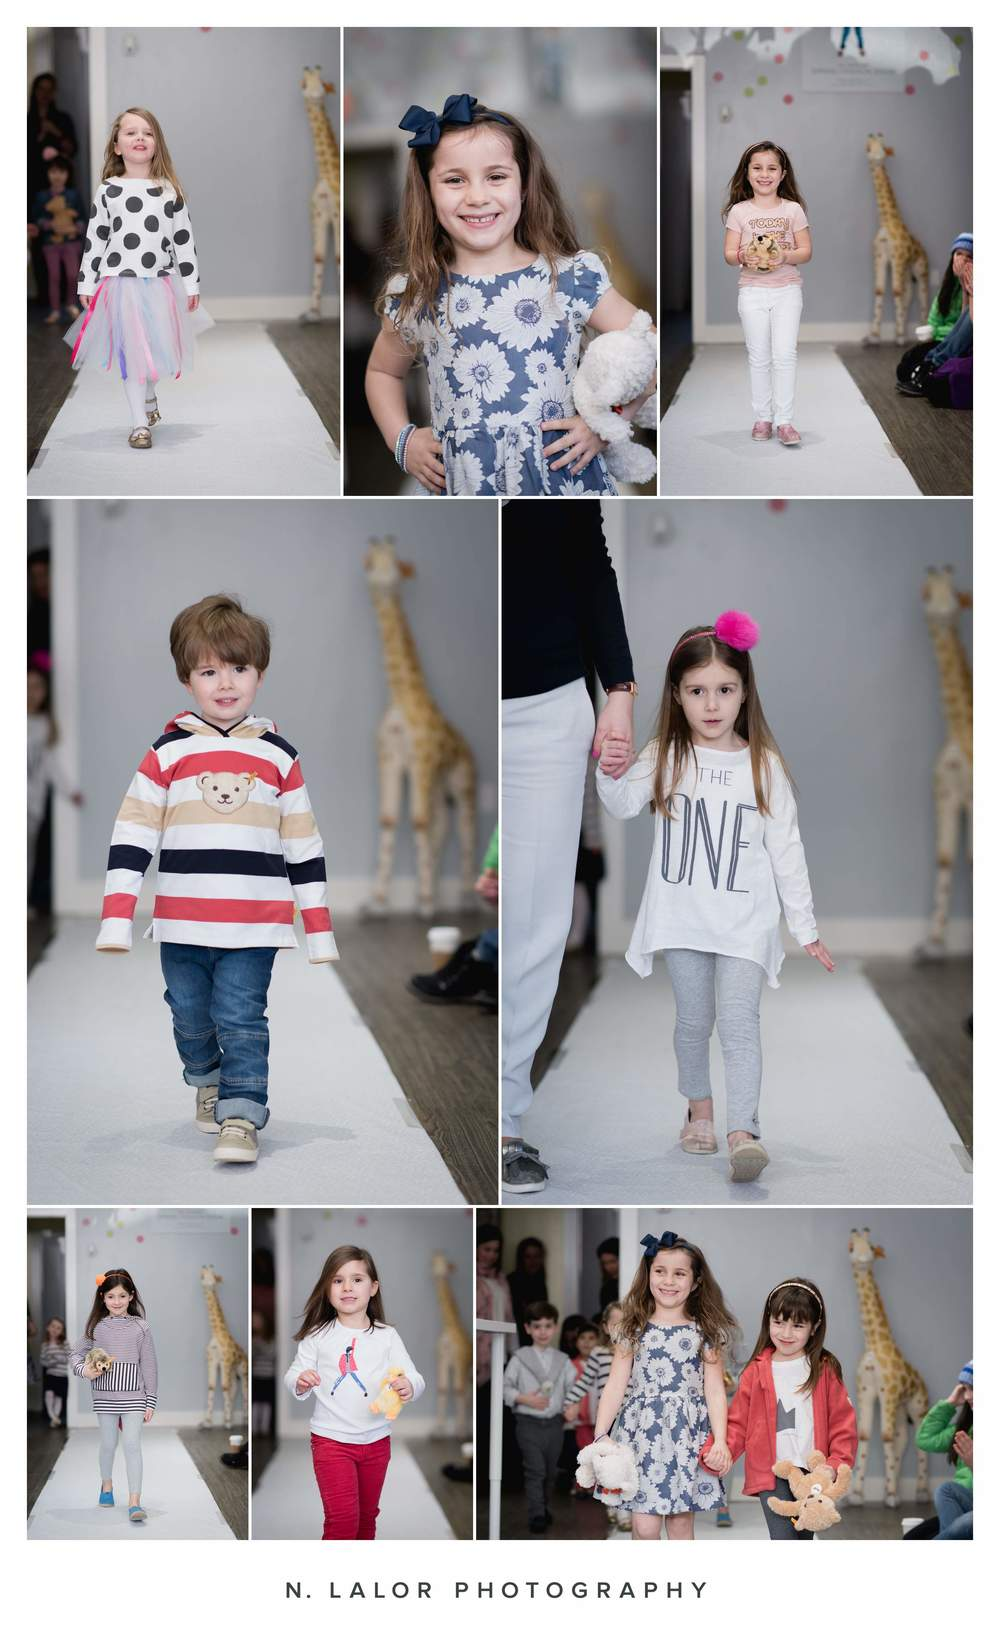 Kids Spring Fashion Show at Ella & Henry in New Canaan Connecticut. Photo by N. Lalor Photography.